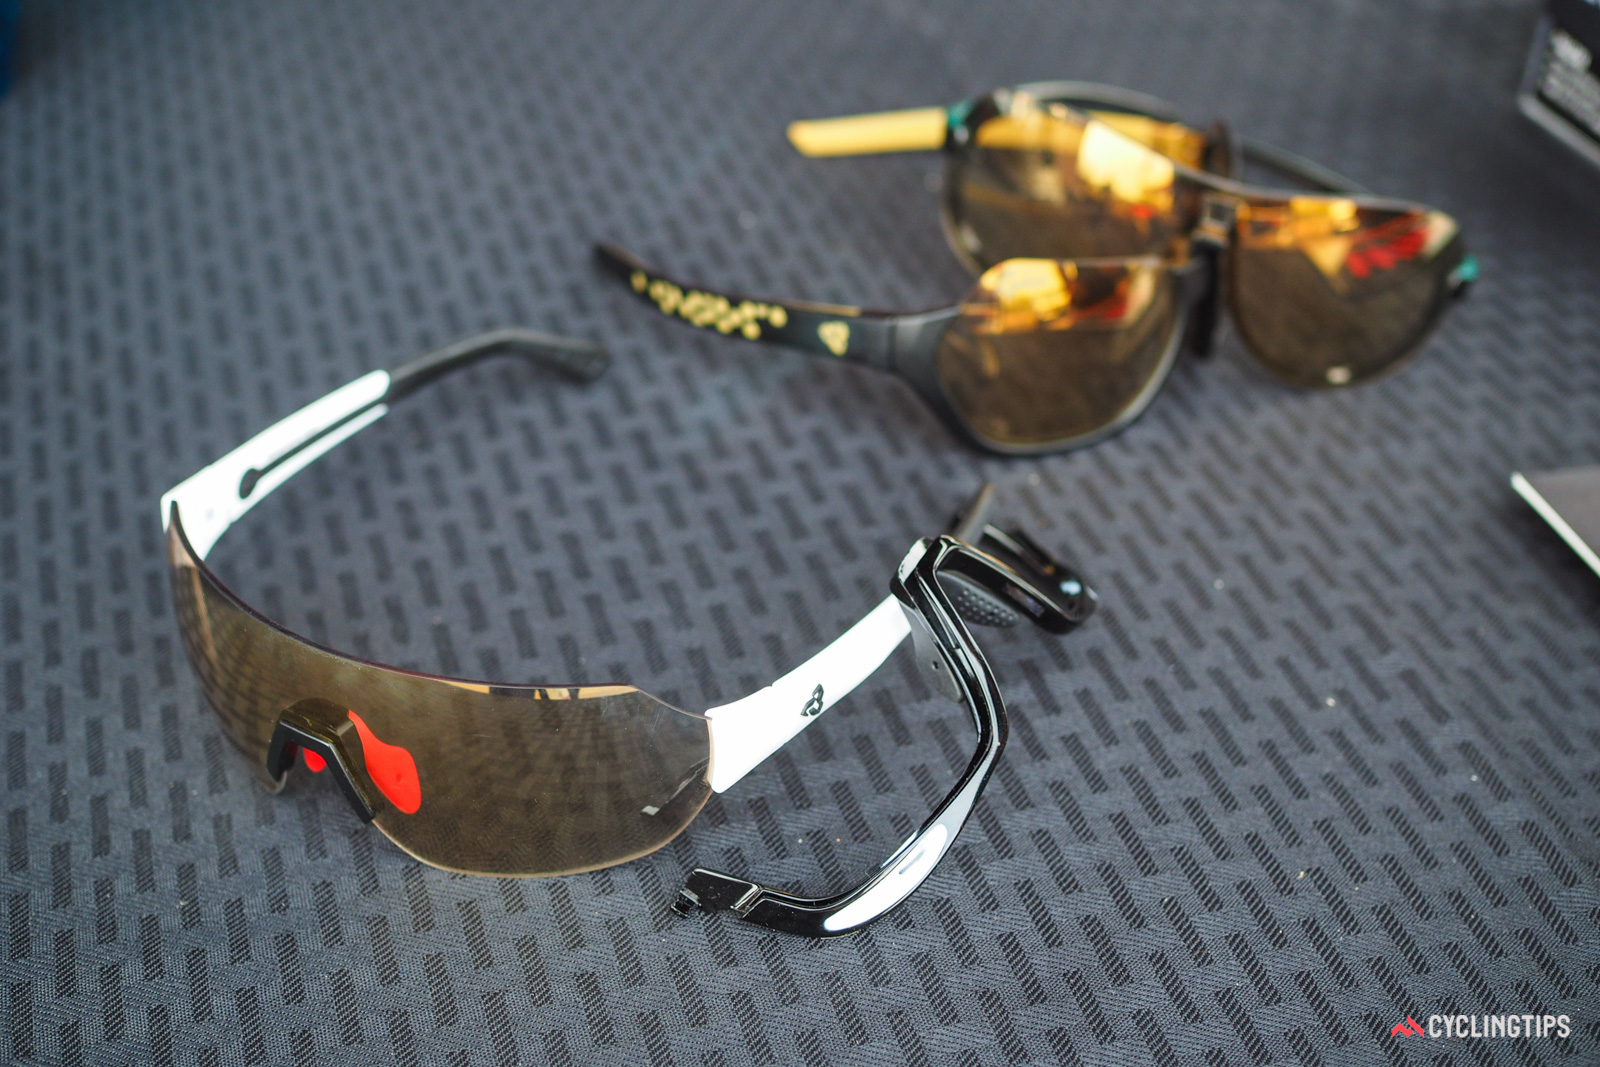 Ryders' new Roam sunglasses use NXT cast polycarbonate photochromic lenses with an anti-fog inner coating and a hydrophobic outer one. The lower half frame can be removed as needed or desired. Retail price is US$240.